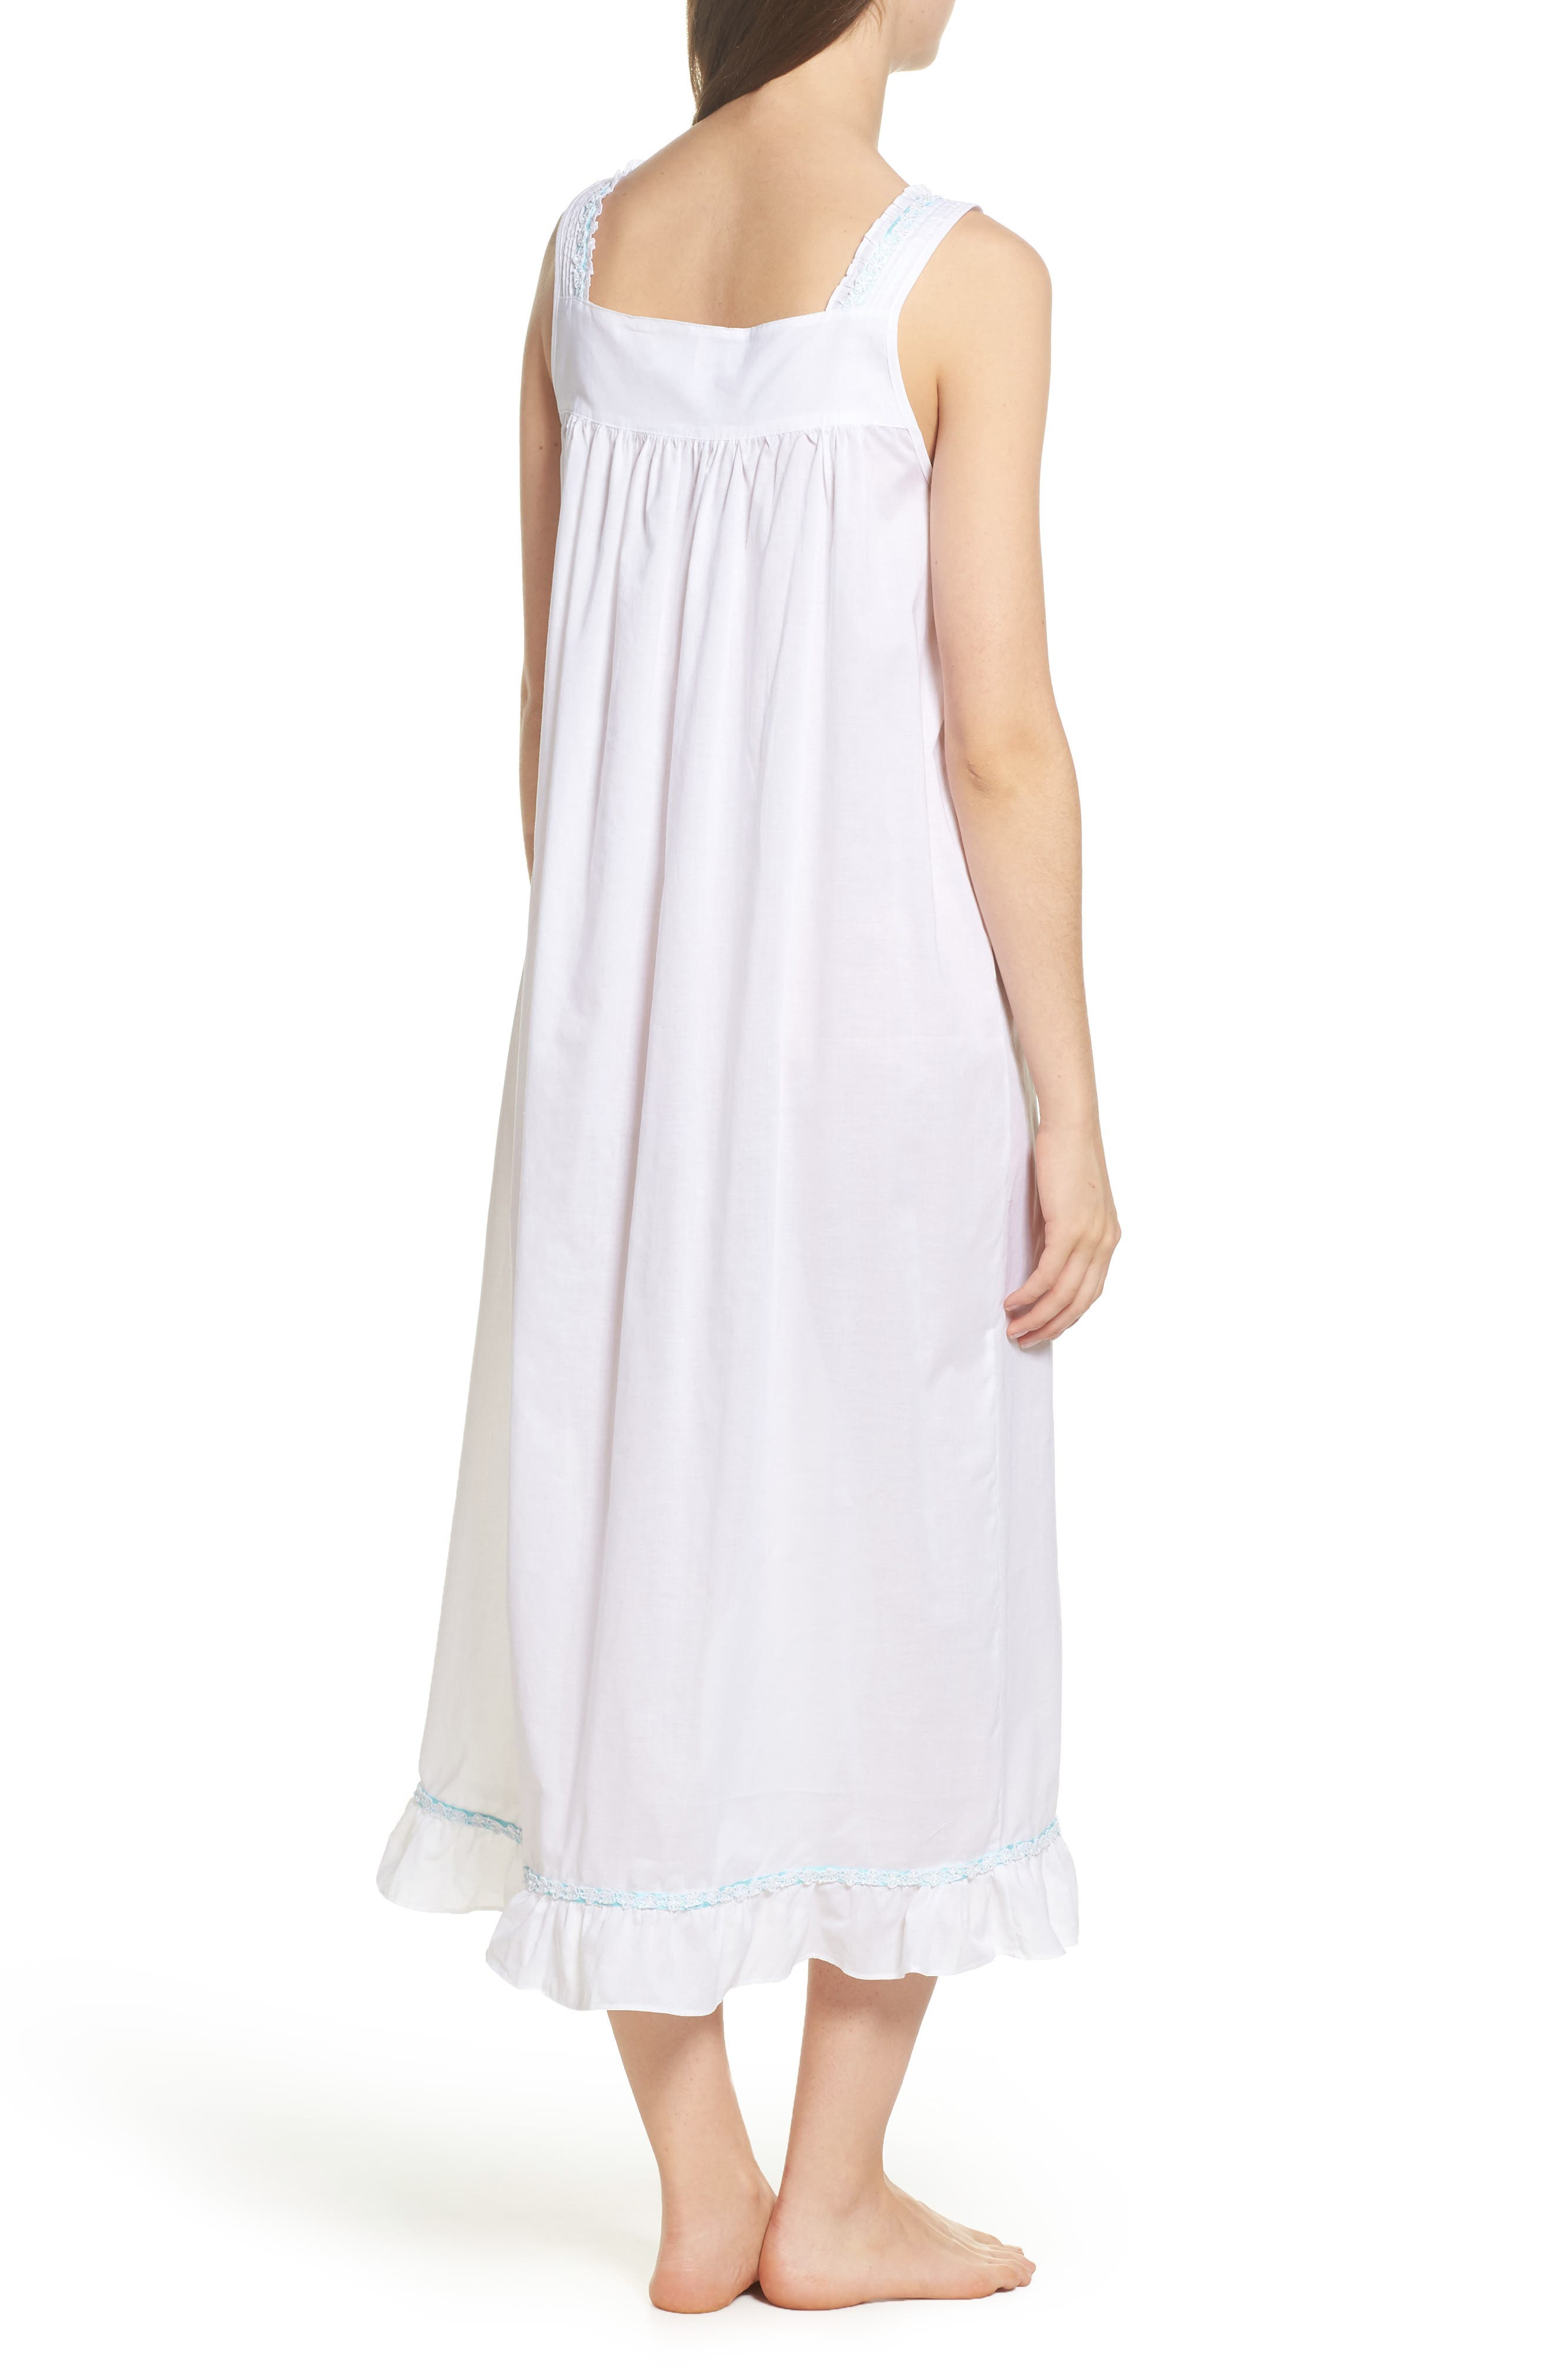 Cotton Lawn Ballet Nightgown,                             Alternate thumbnail 2, color,                             Solid White